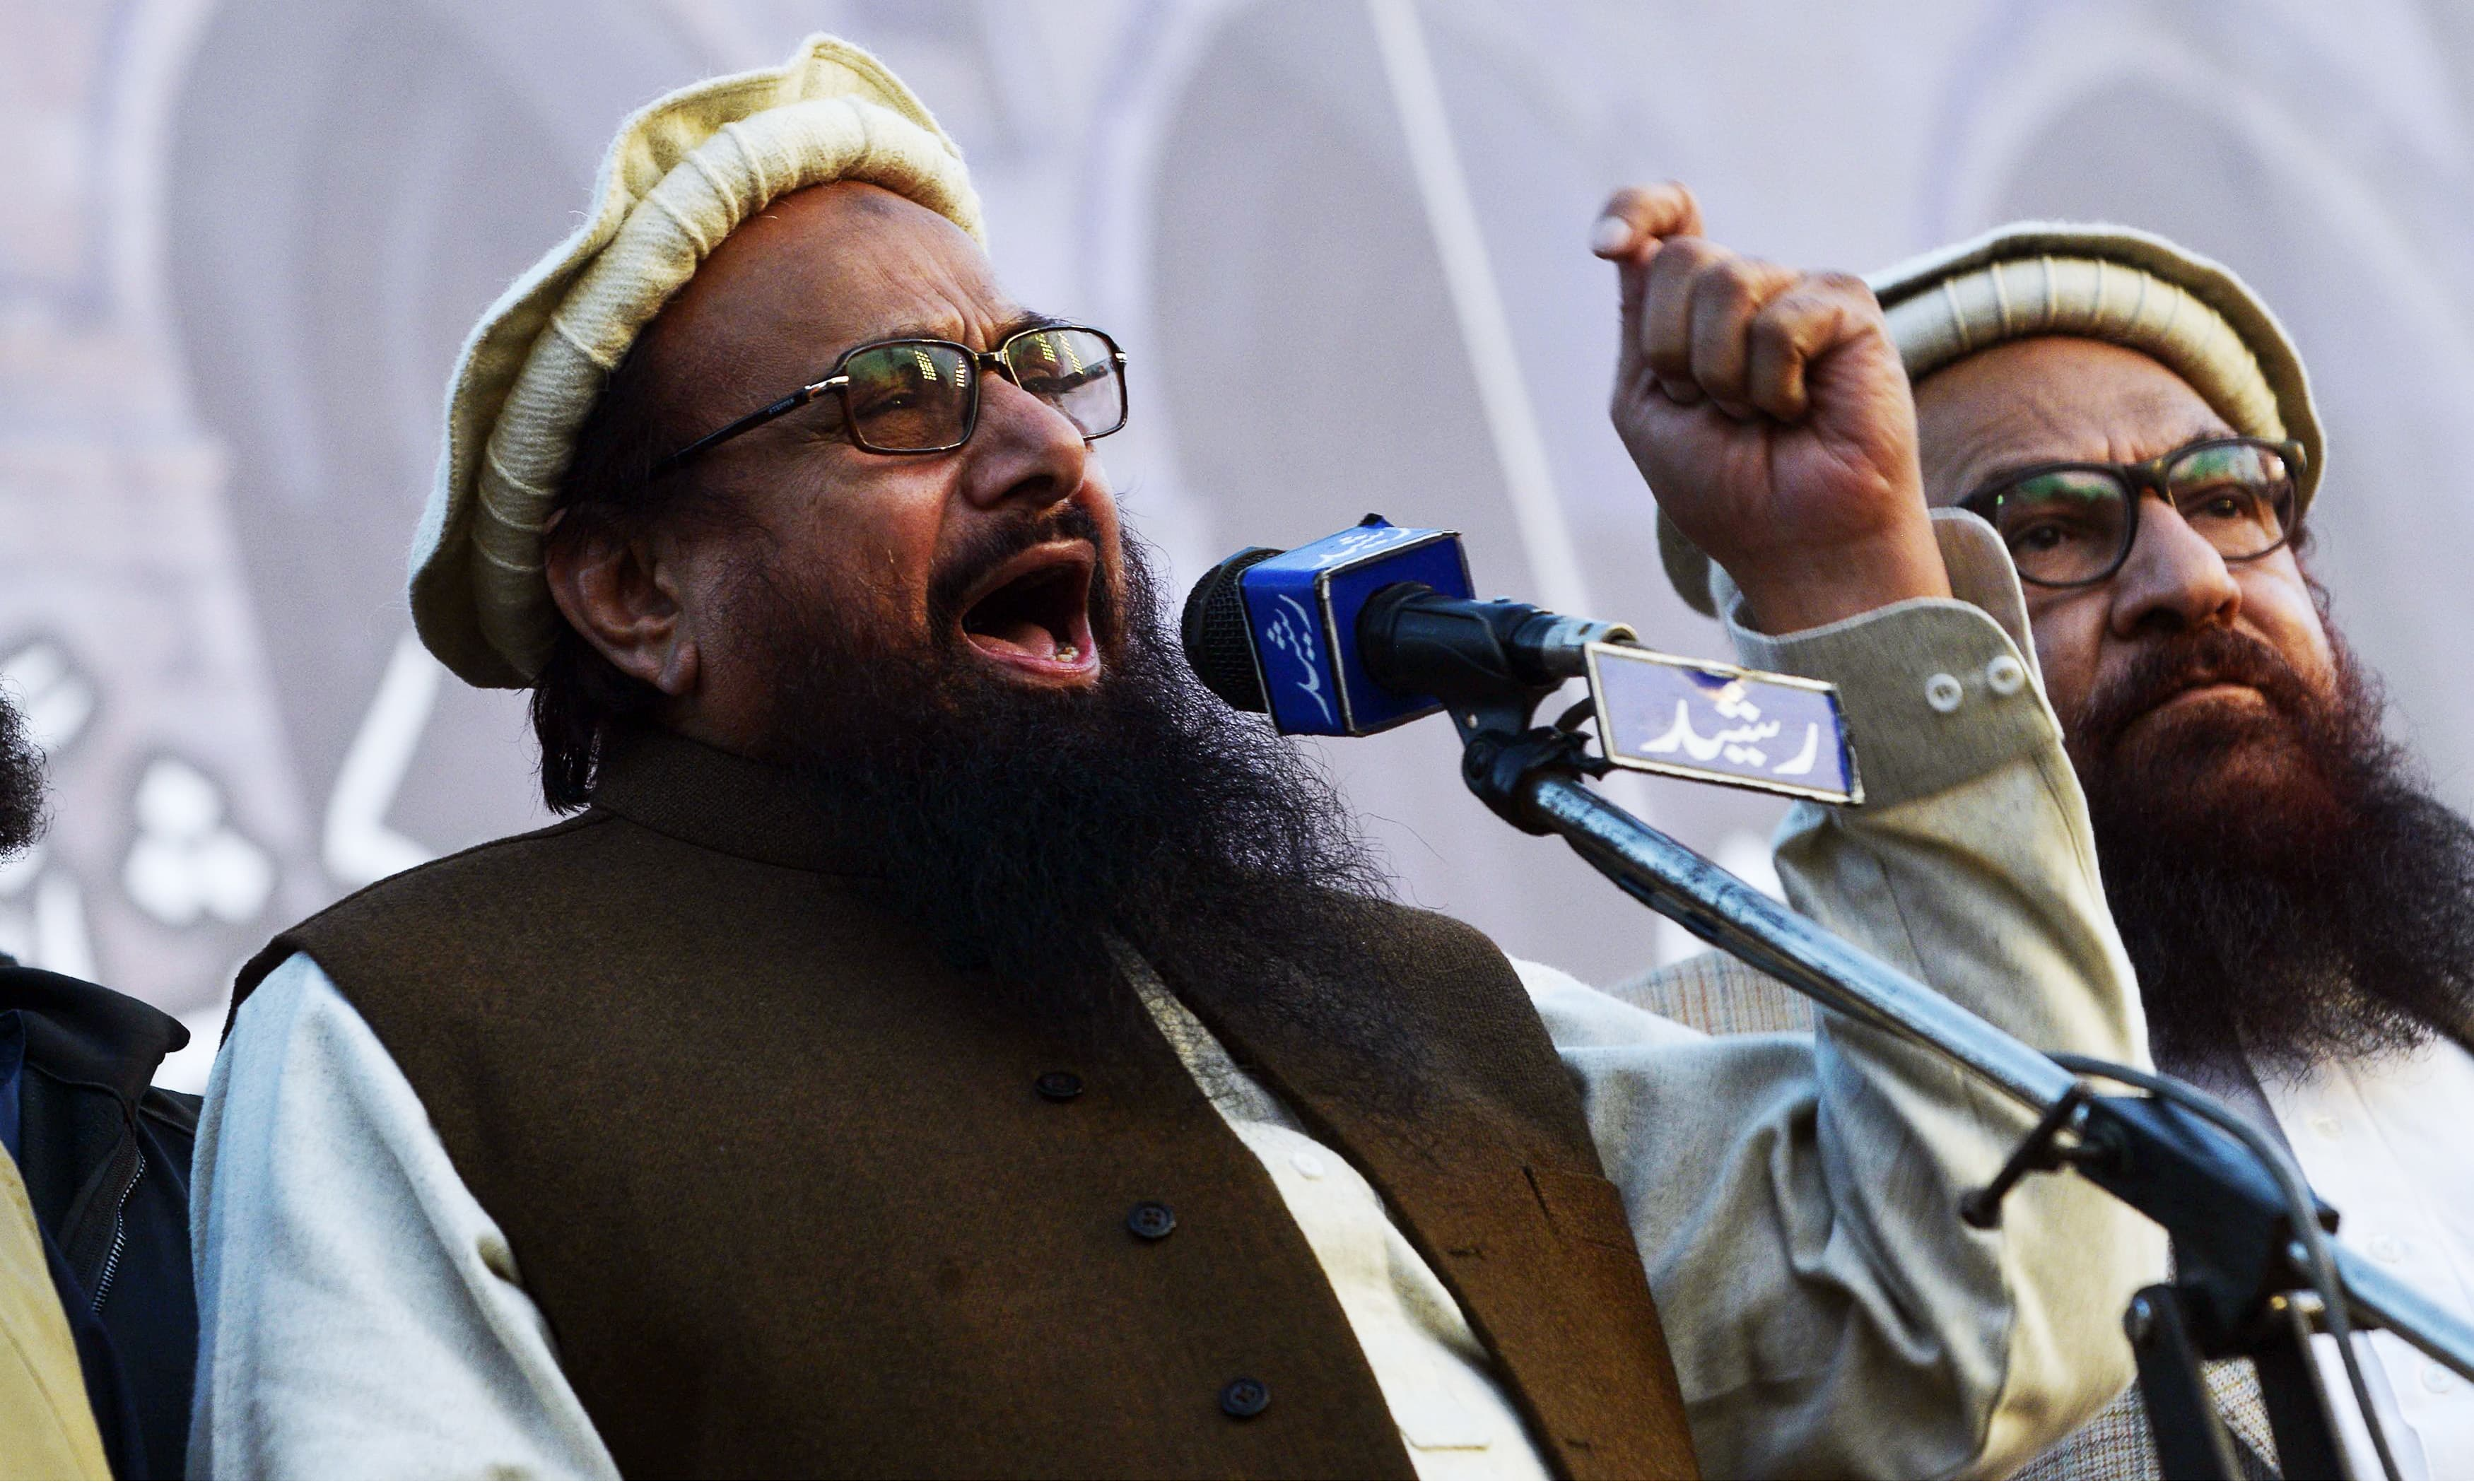 JuD chief Hafiz Saeed addresses an anti-US rally in Lahore. —AFP